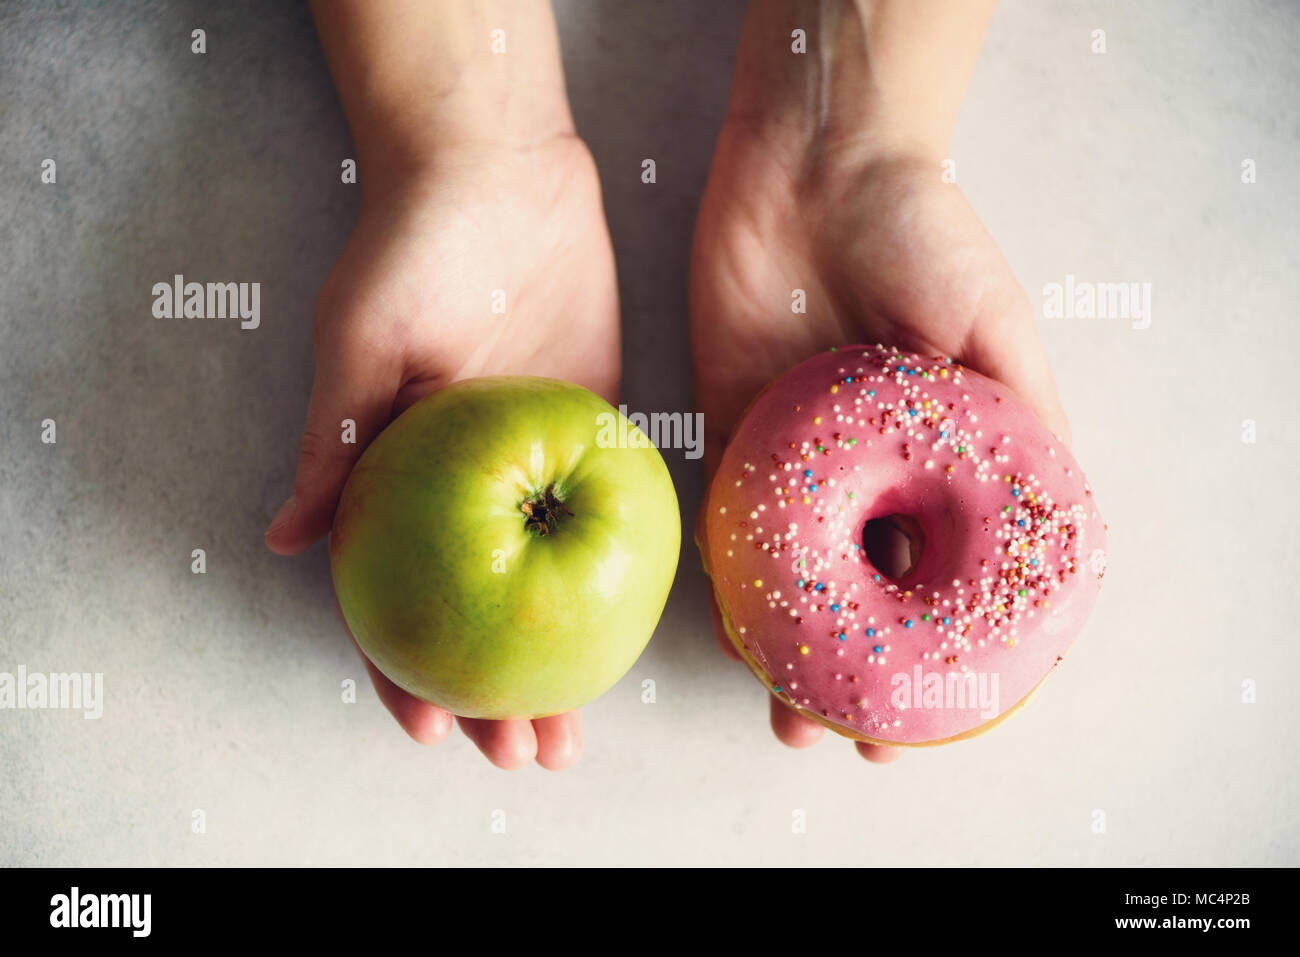 Young woman in white T-shirt choosing between green apple or junk food, donut. Healthy clean detox eating concept. Vegetarian, vegan, raw concept. Copy space - Stock Photo